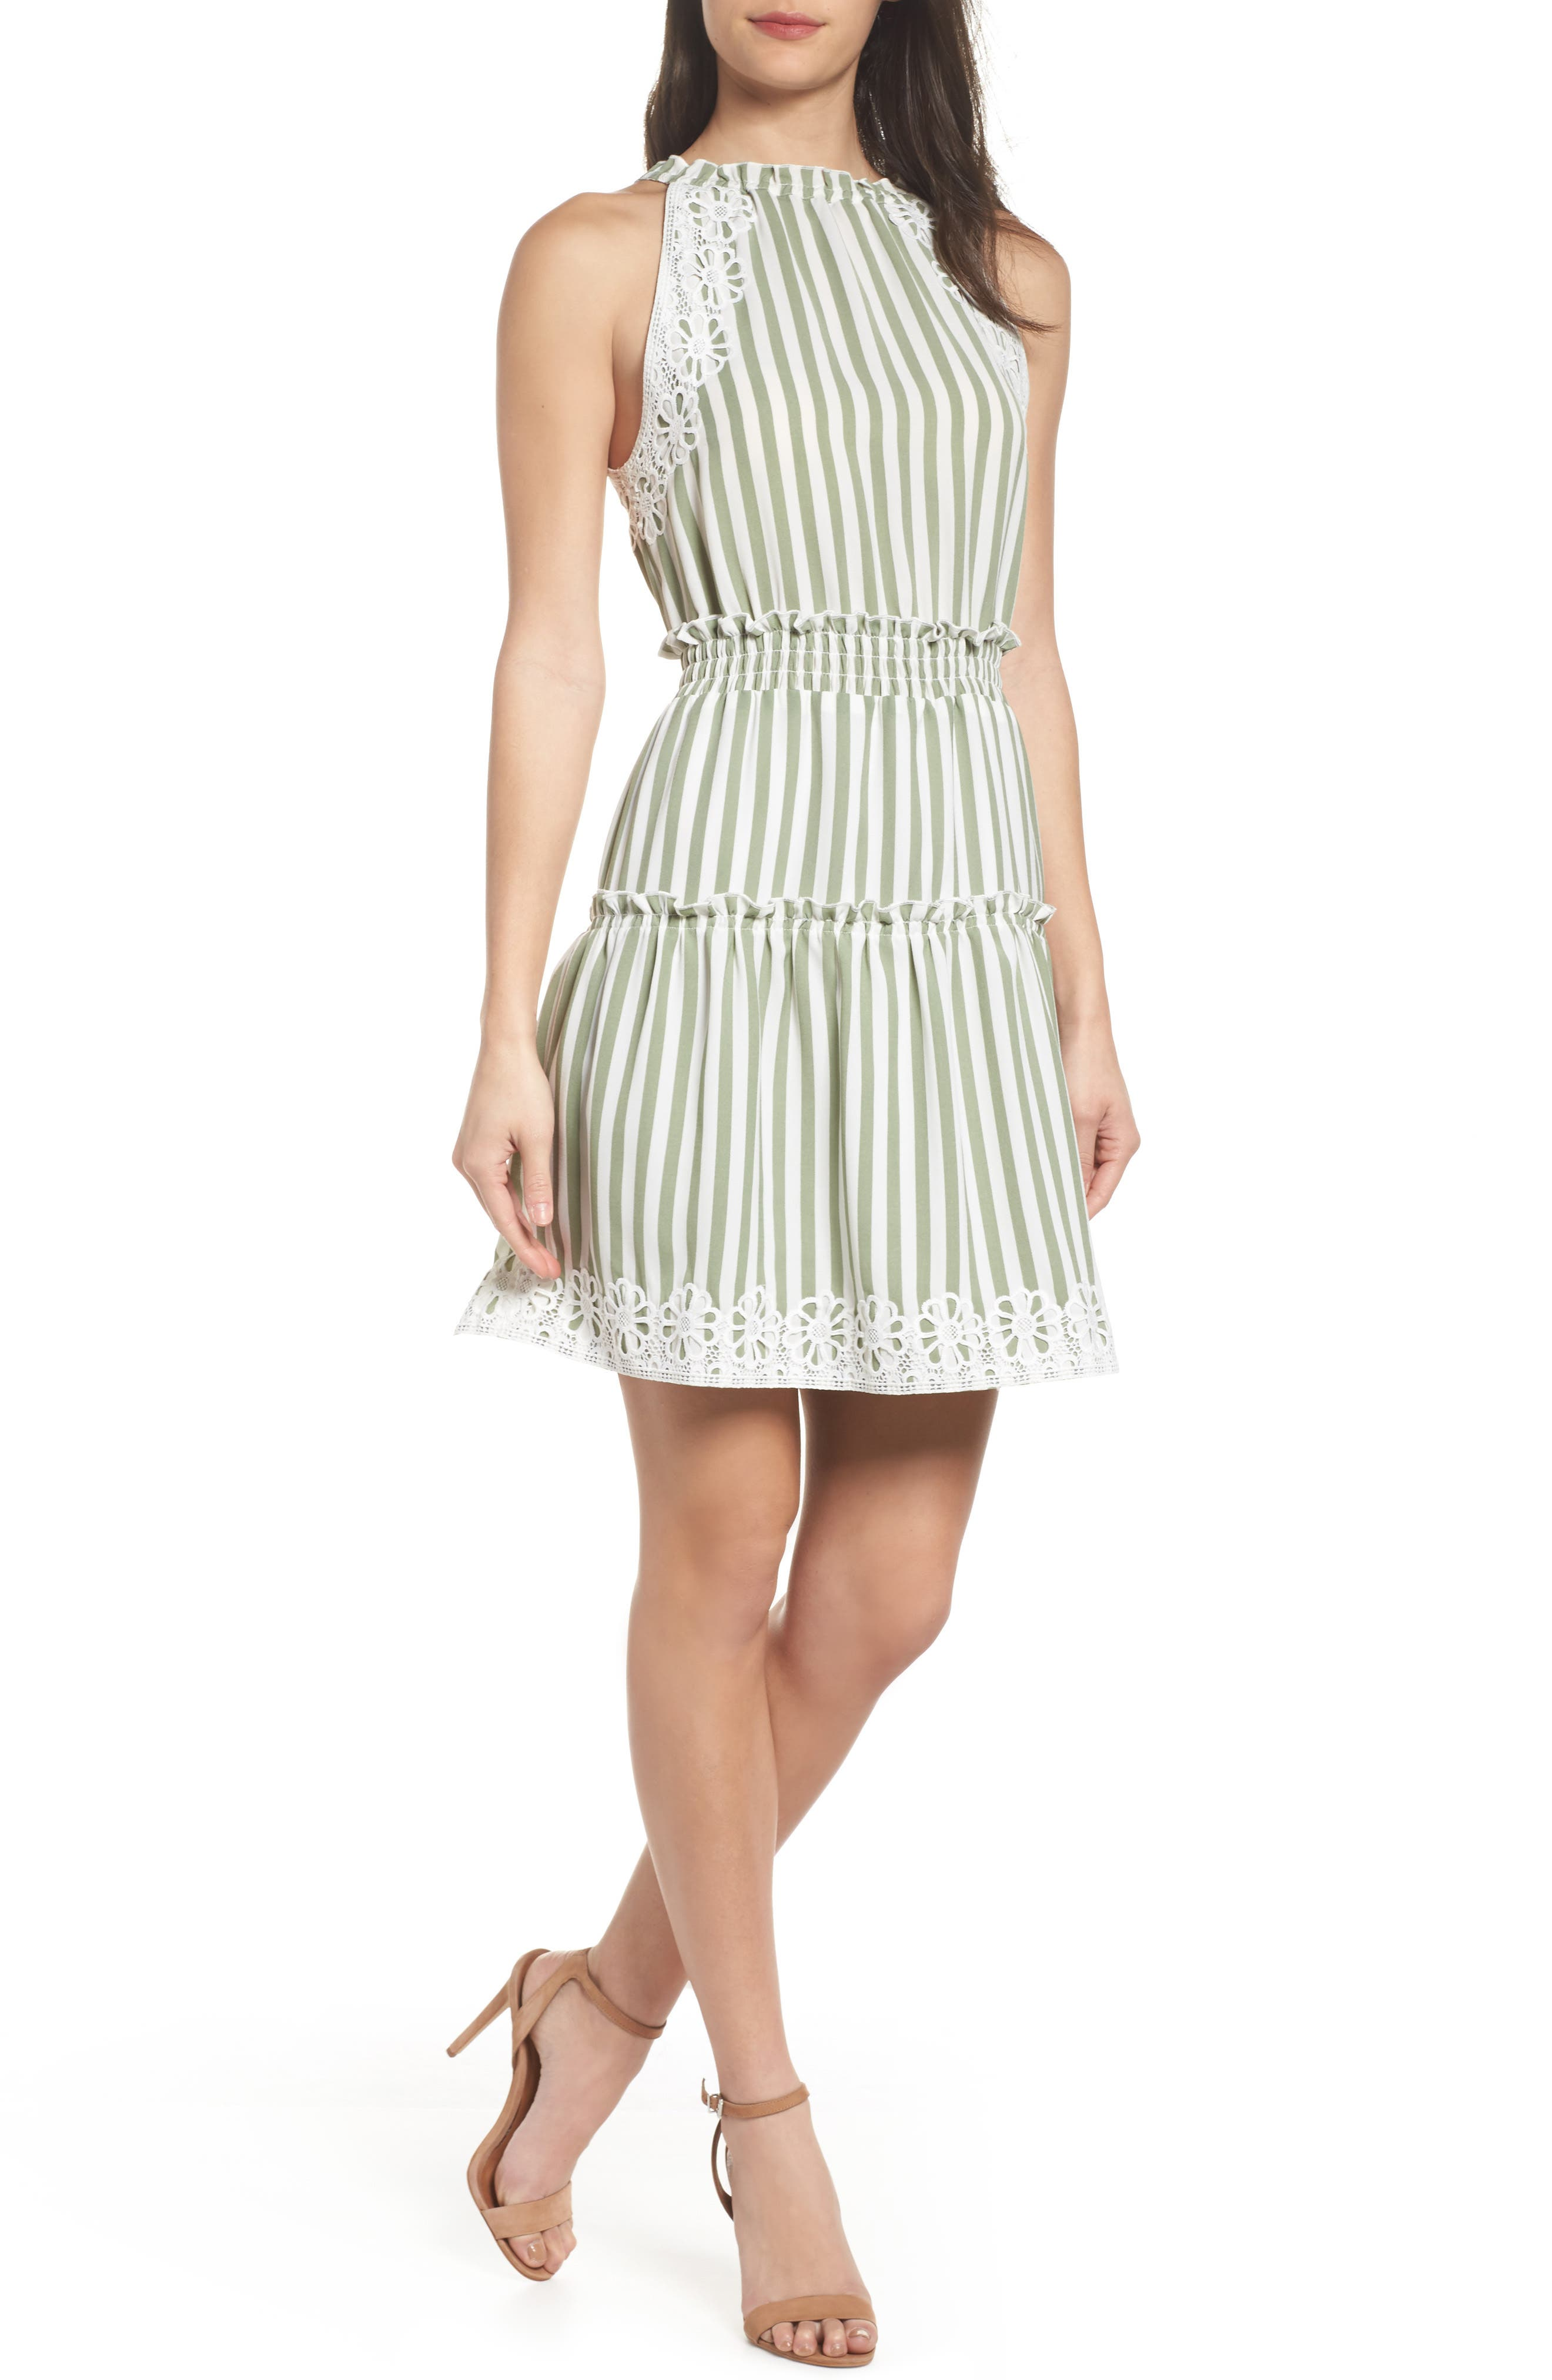 NSR Lauren Stripe Sleeveless Fit & Flare Dress